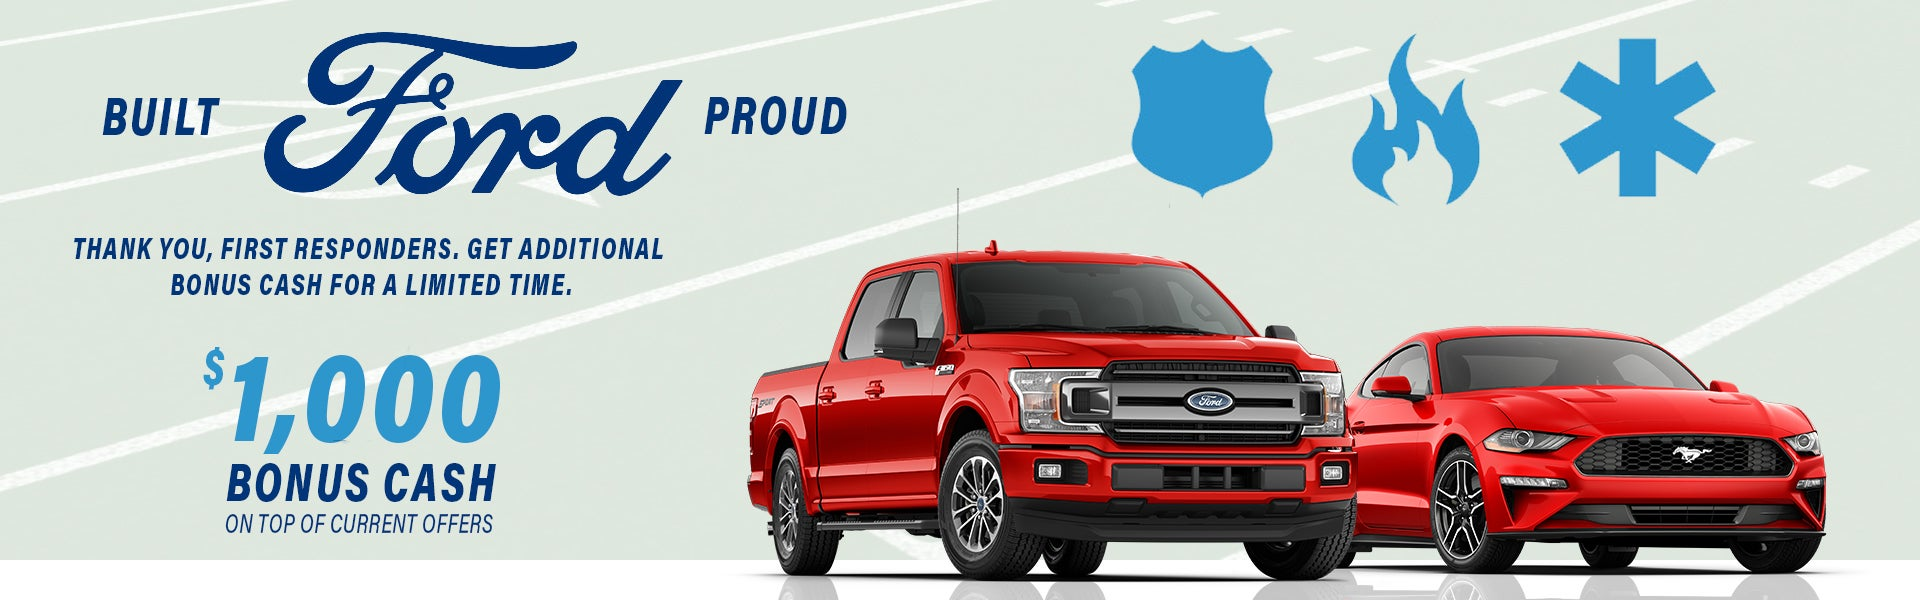 Crossroads Ford Southern Pines >> Ford Dealer In Southern Pines Nc Used Cars Southern Pines